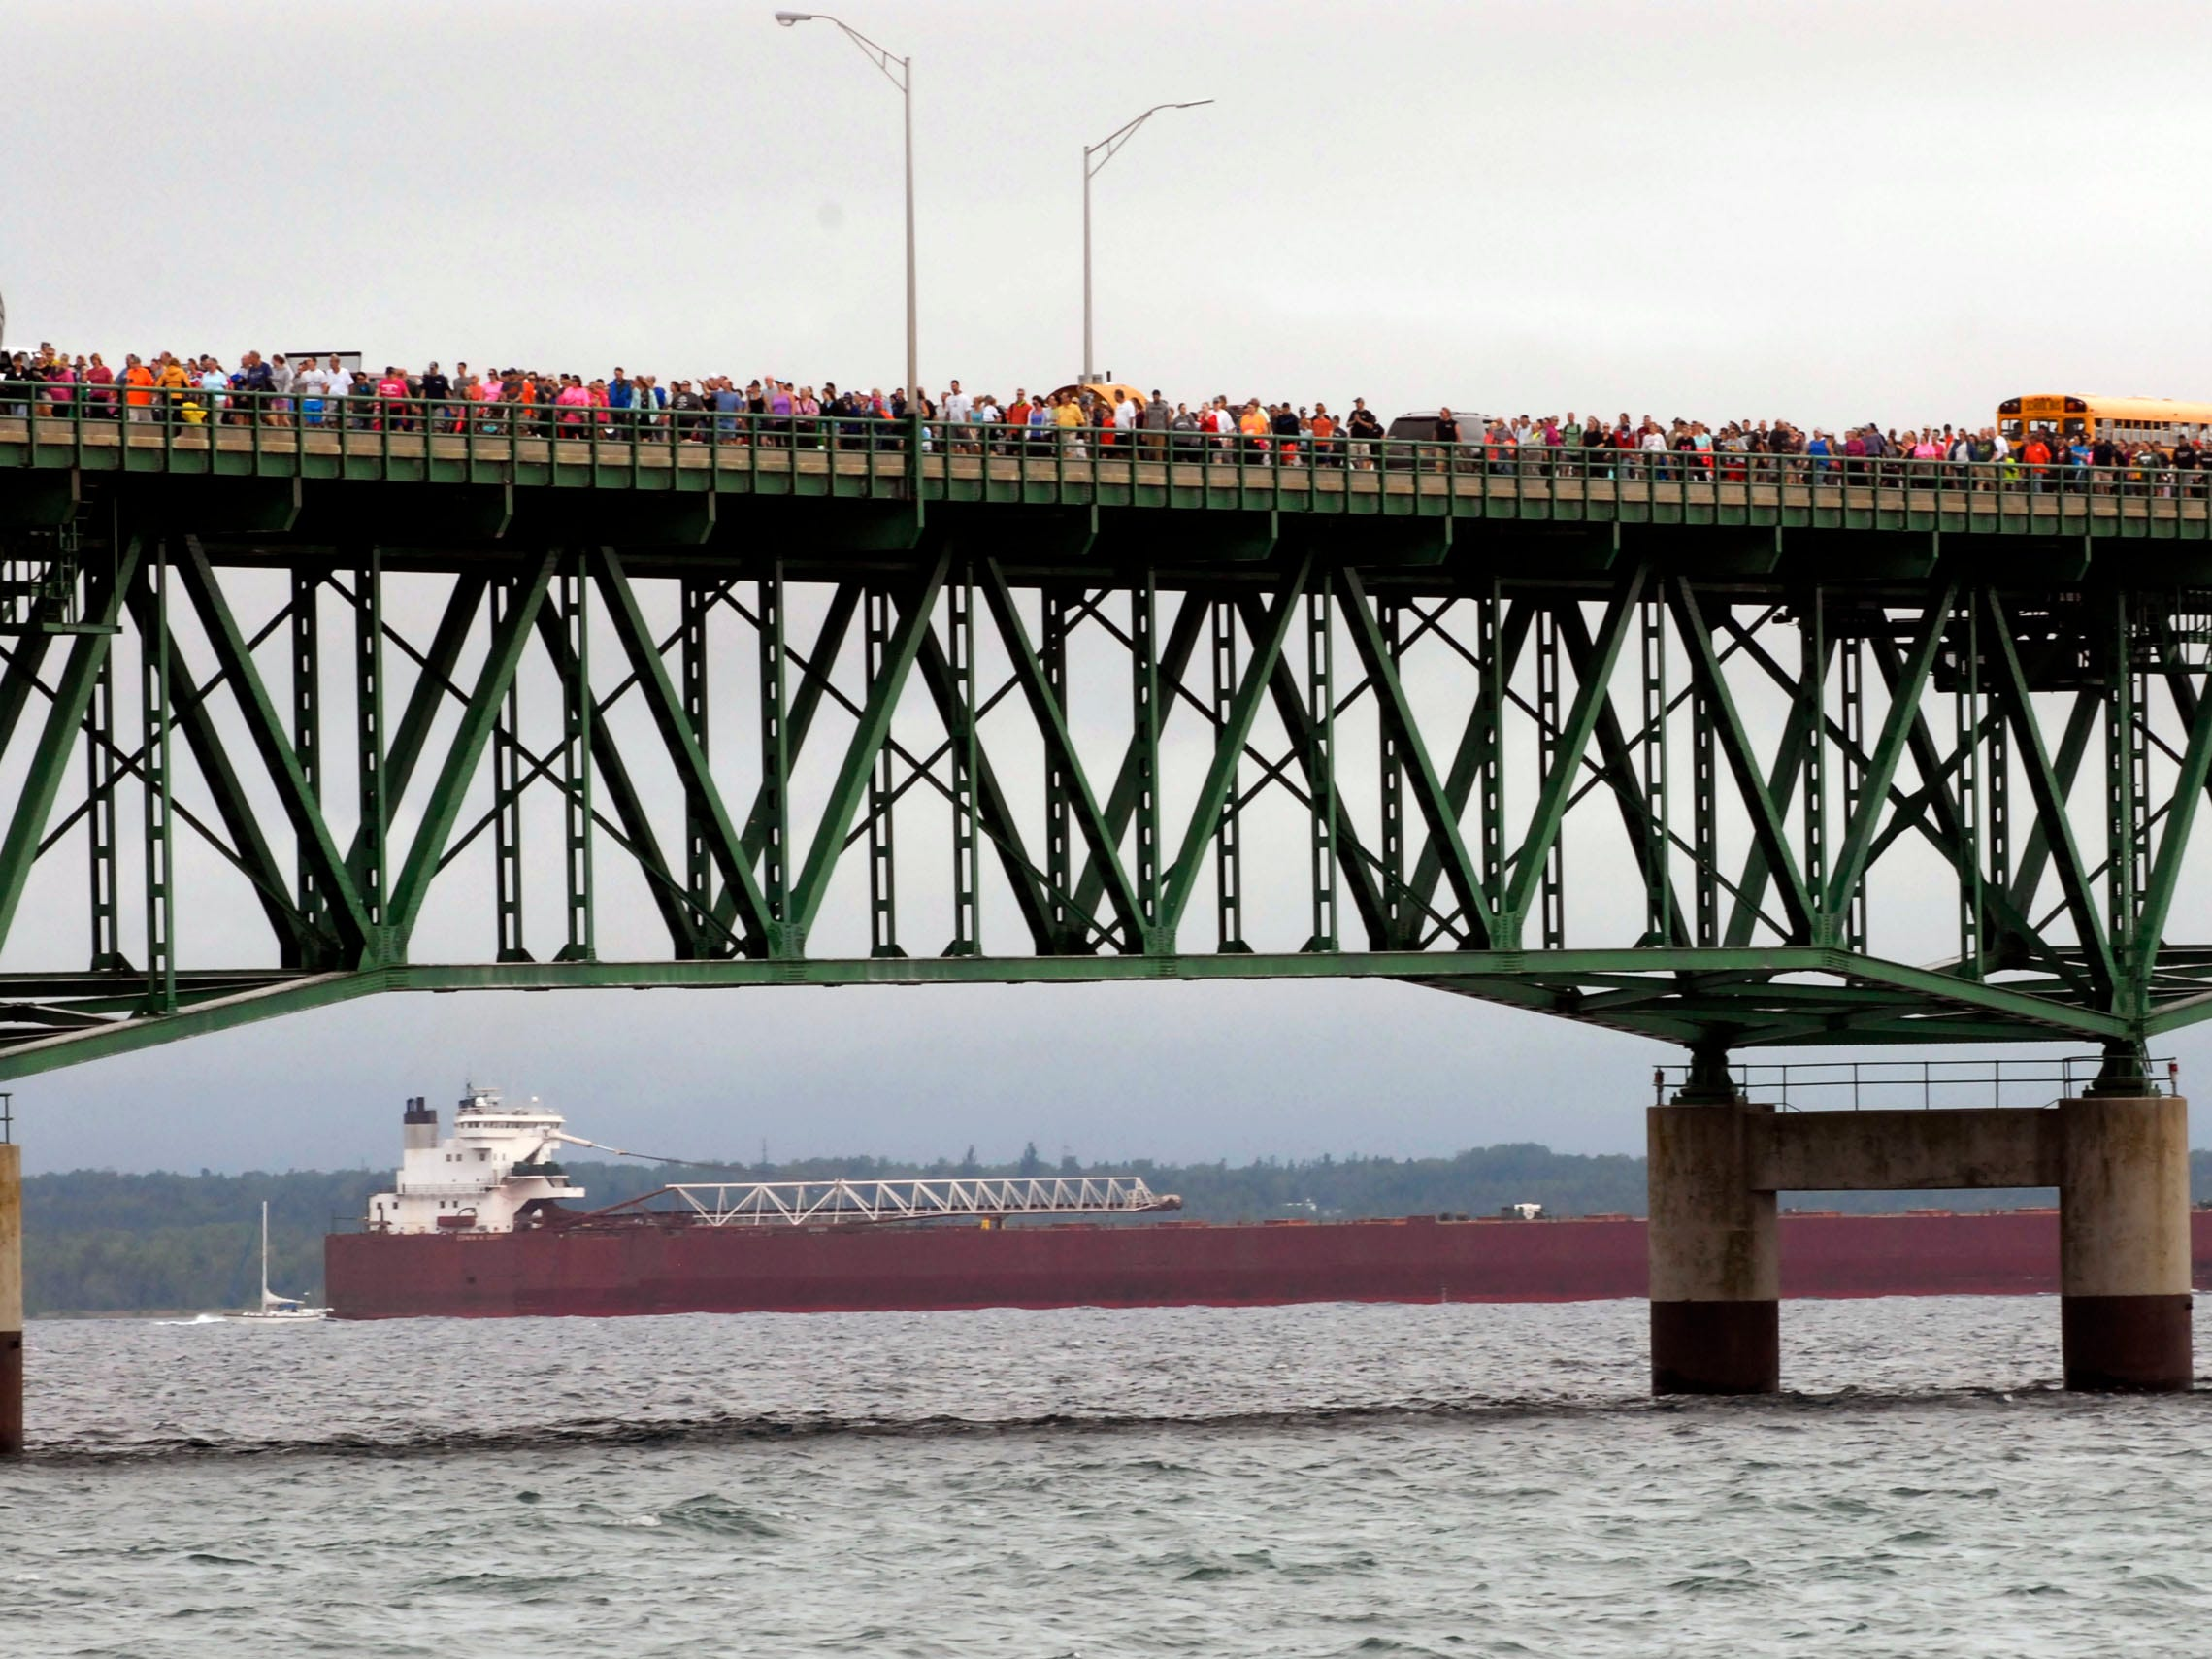 Pedestrians walk the Mackinac Bridge, Monday, Sept. 7, 2015, as an ore freighter approaches to pass under the span, in Mackinaw City, Mich. Labor Day is the only day walkers are allowed on the span, which connects Michigan's upper and lower peninsulas.